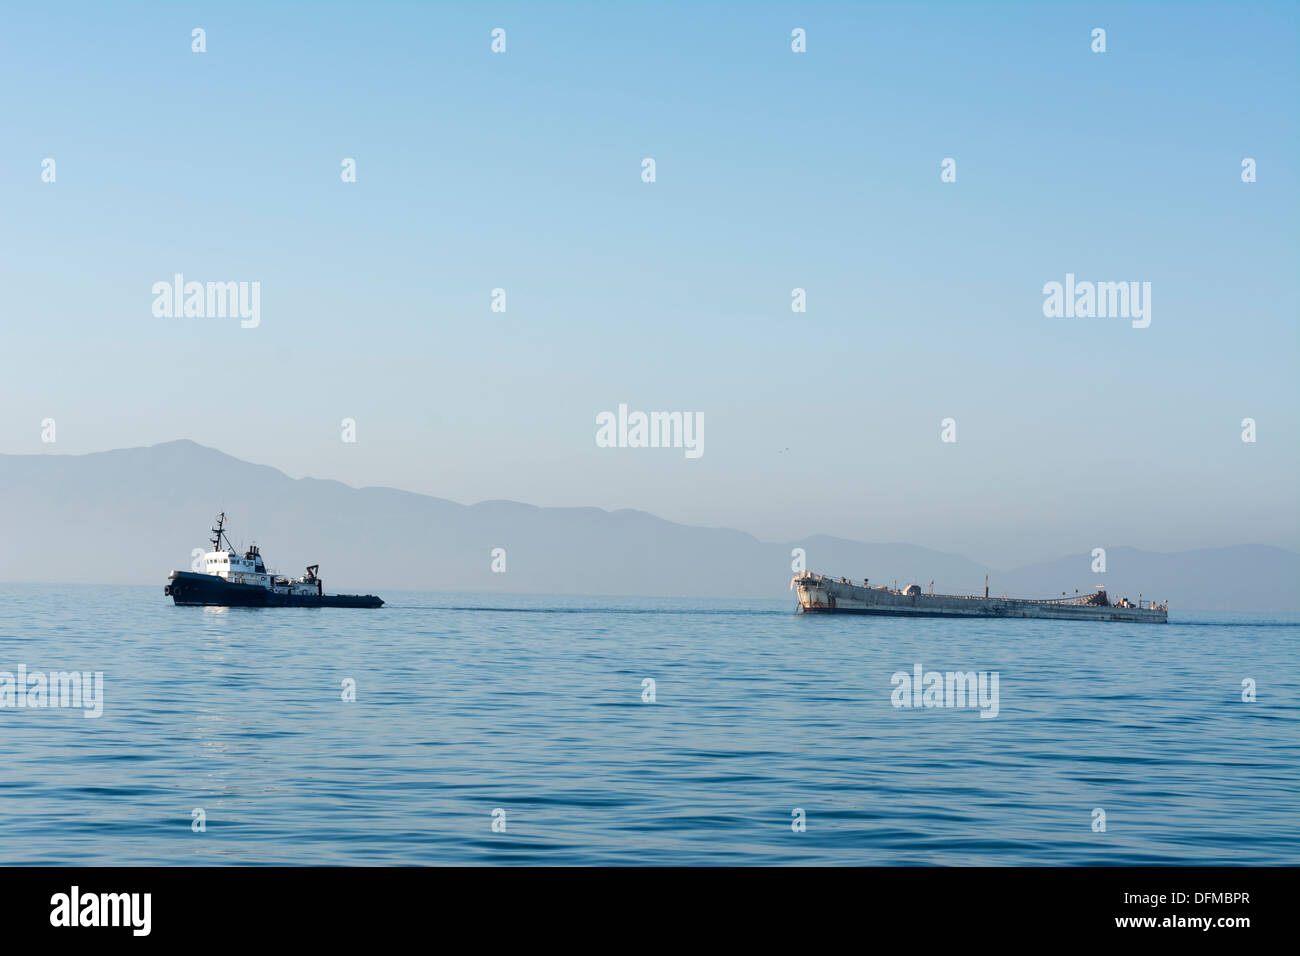 A tugboat towing a disabled freighter during an early morning, hazy day. - Stock Image